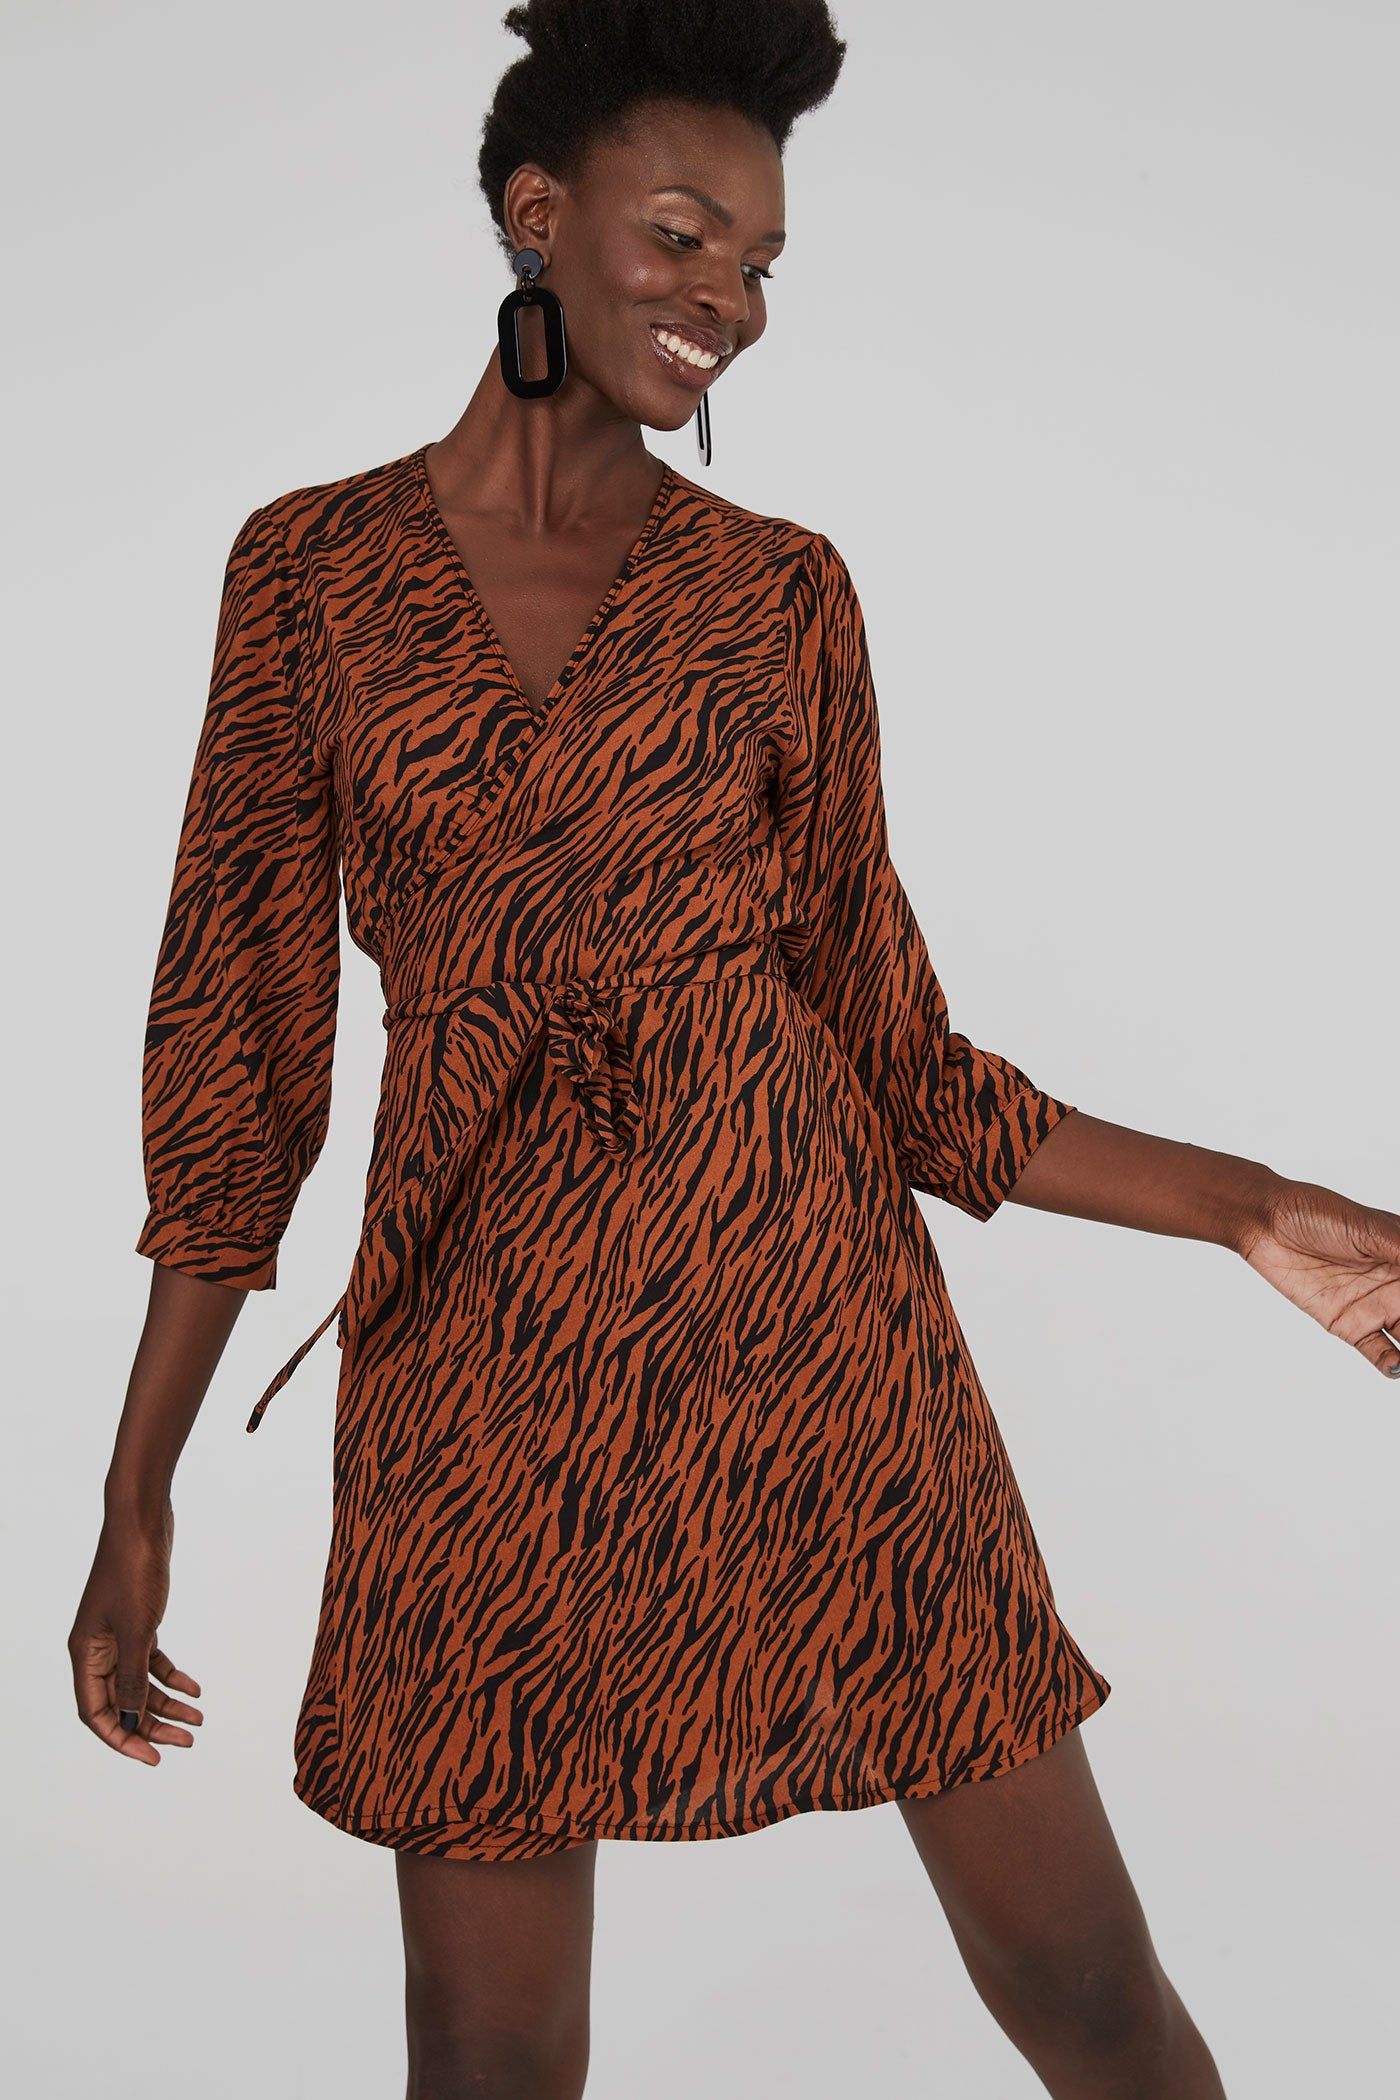 Olive Wrap Dress - Tan Tiger